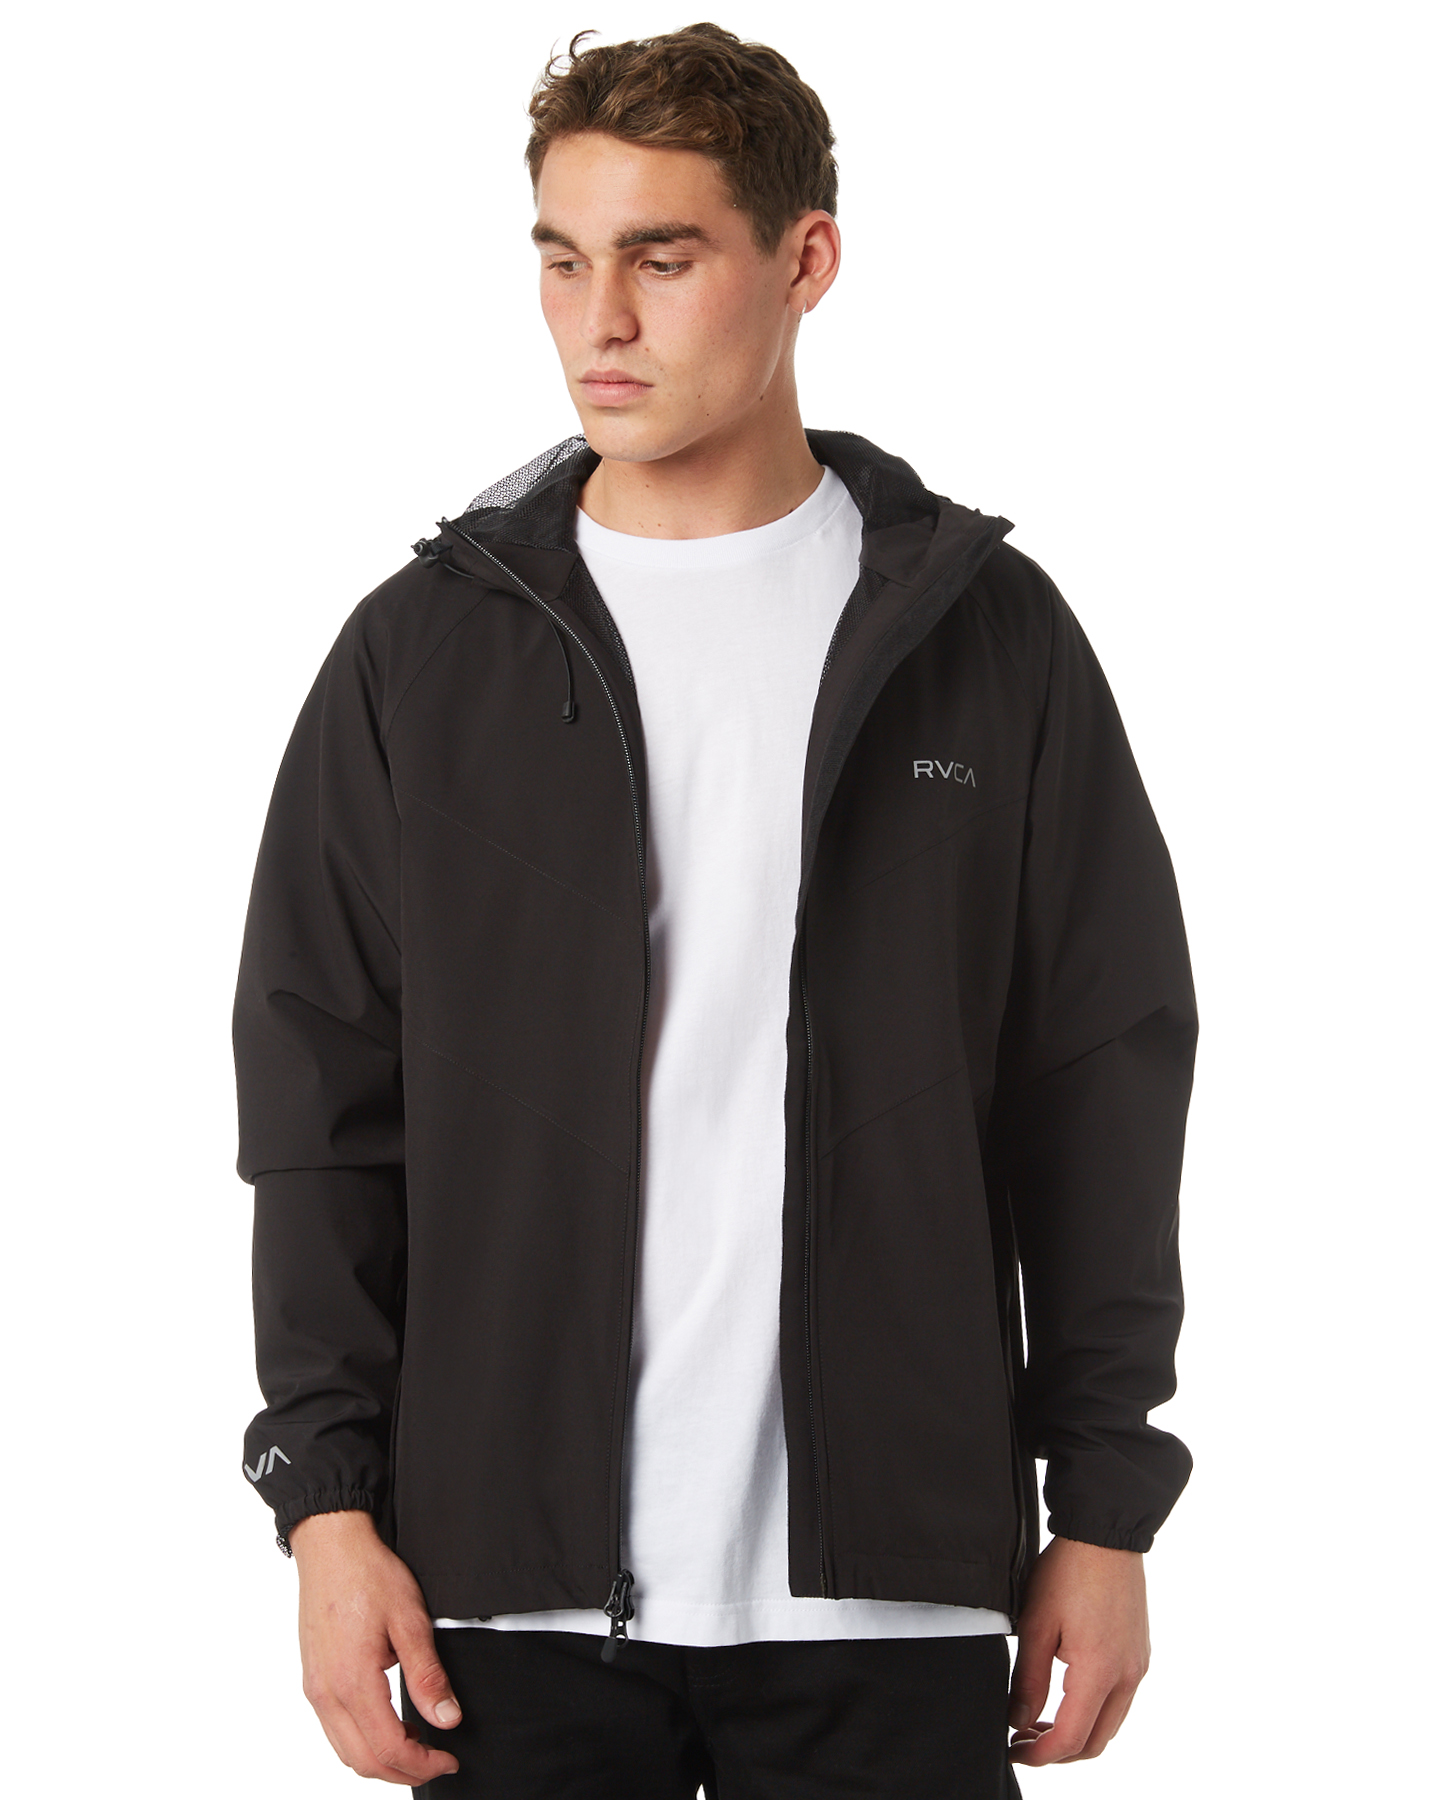 cdbf6acfc Details about New Rvca Men's Va Mens Windbreaker Jacket Mesh Elastane